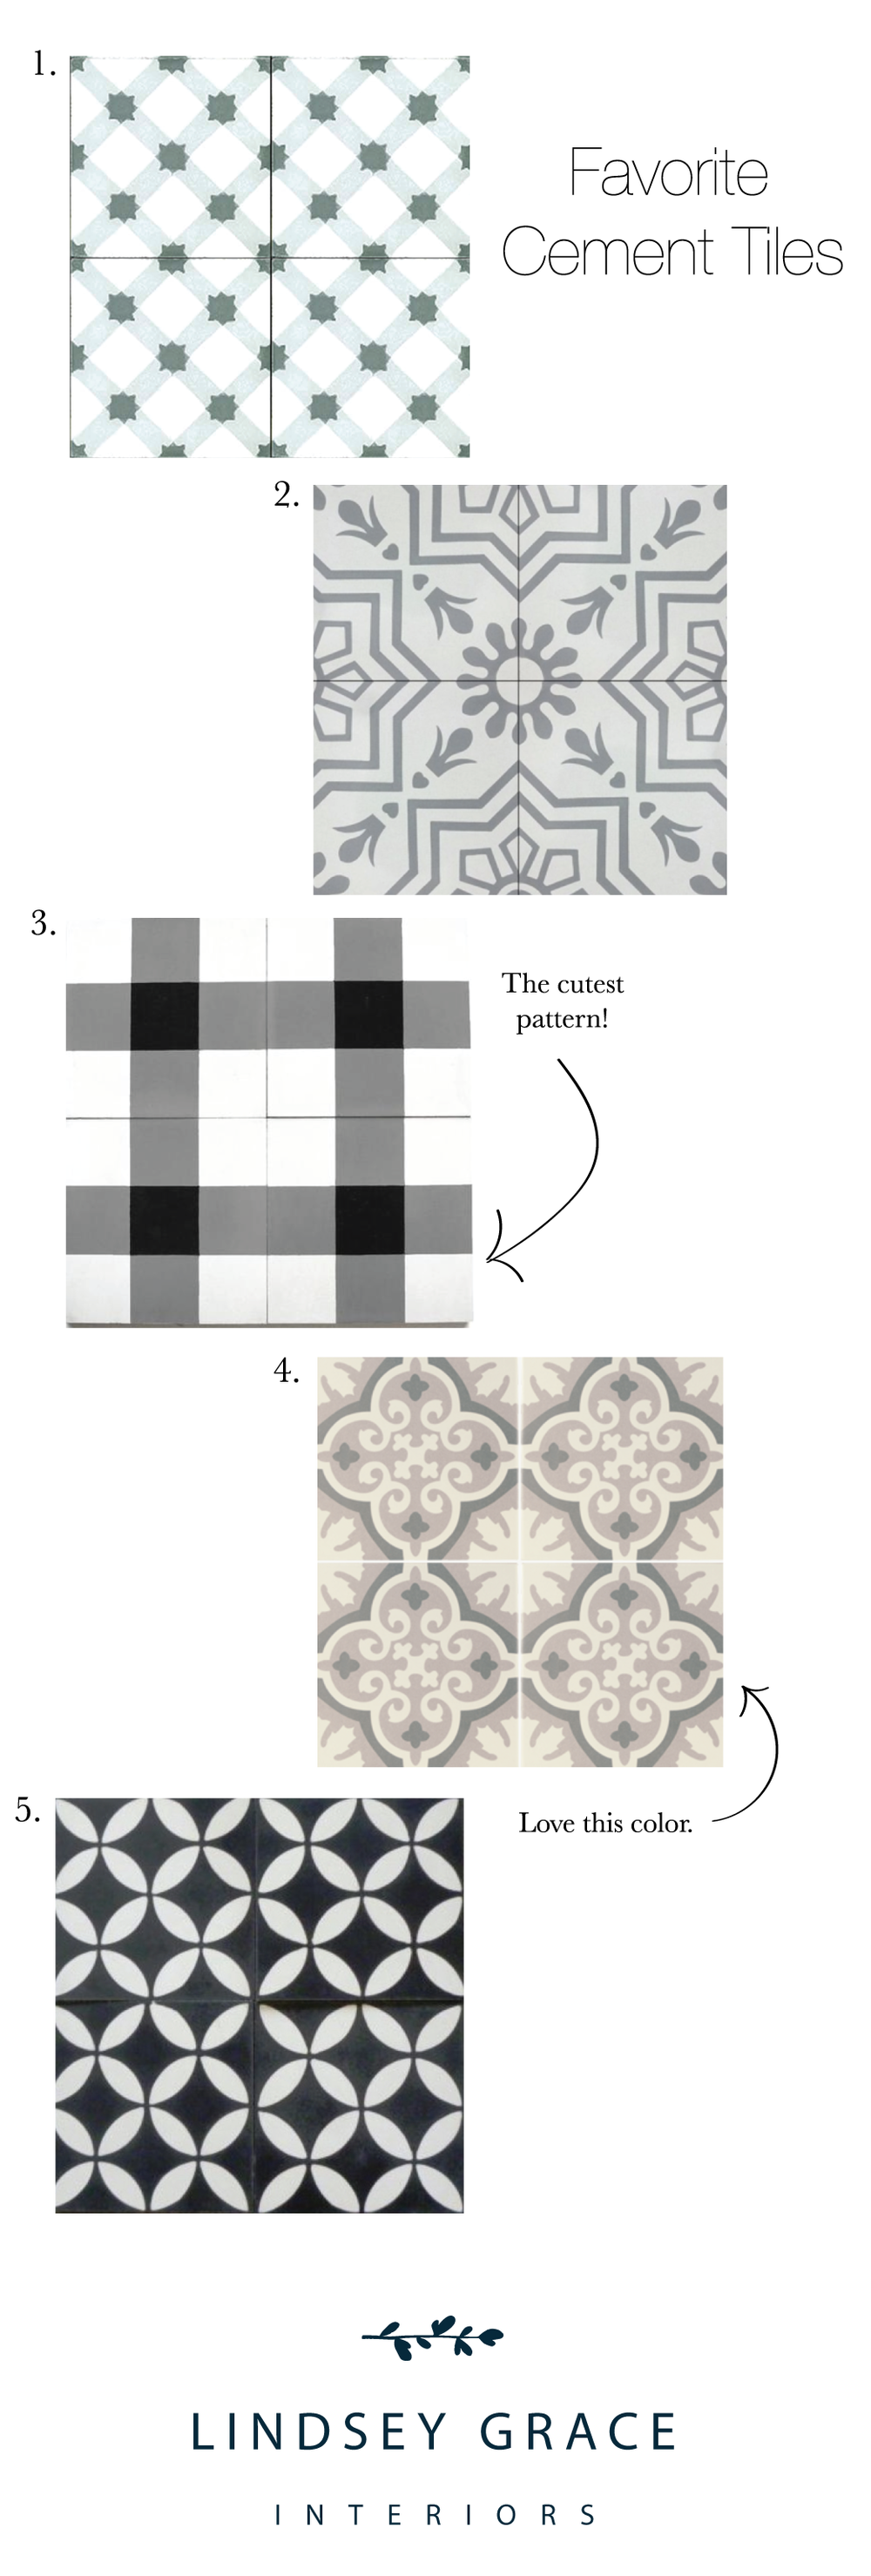 Lindsey Grace Interiors Favorite Cement Tiles.png